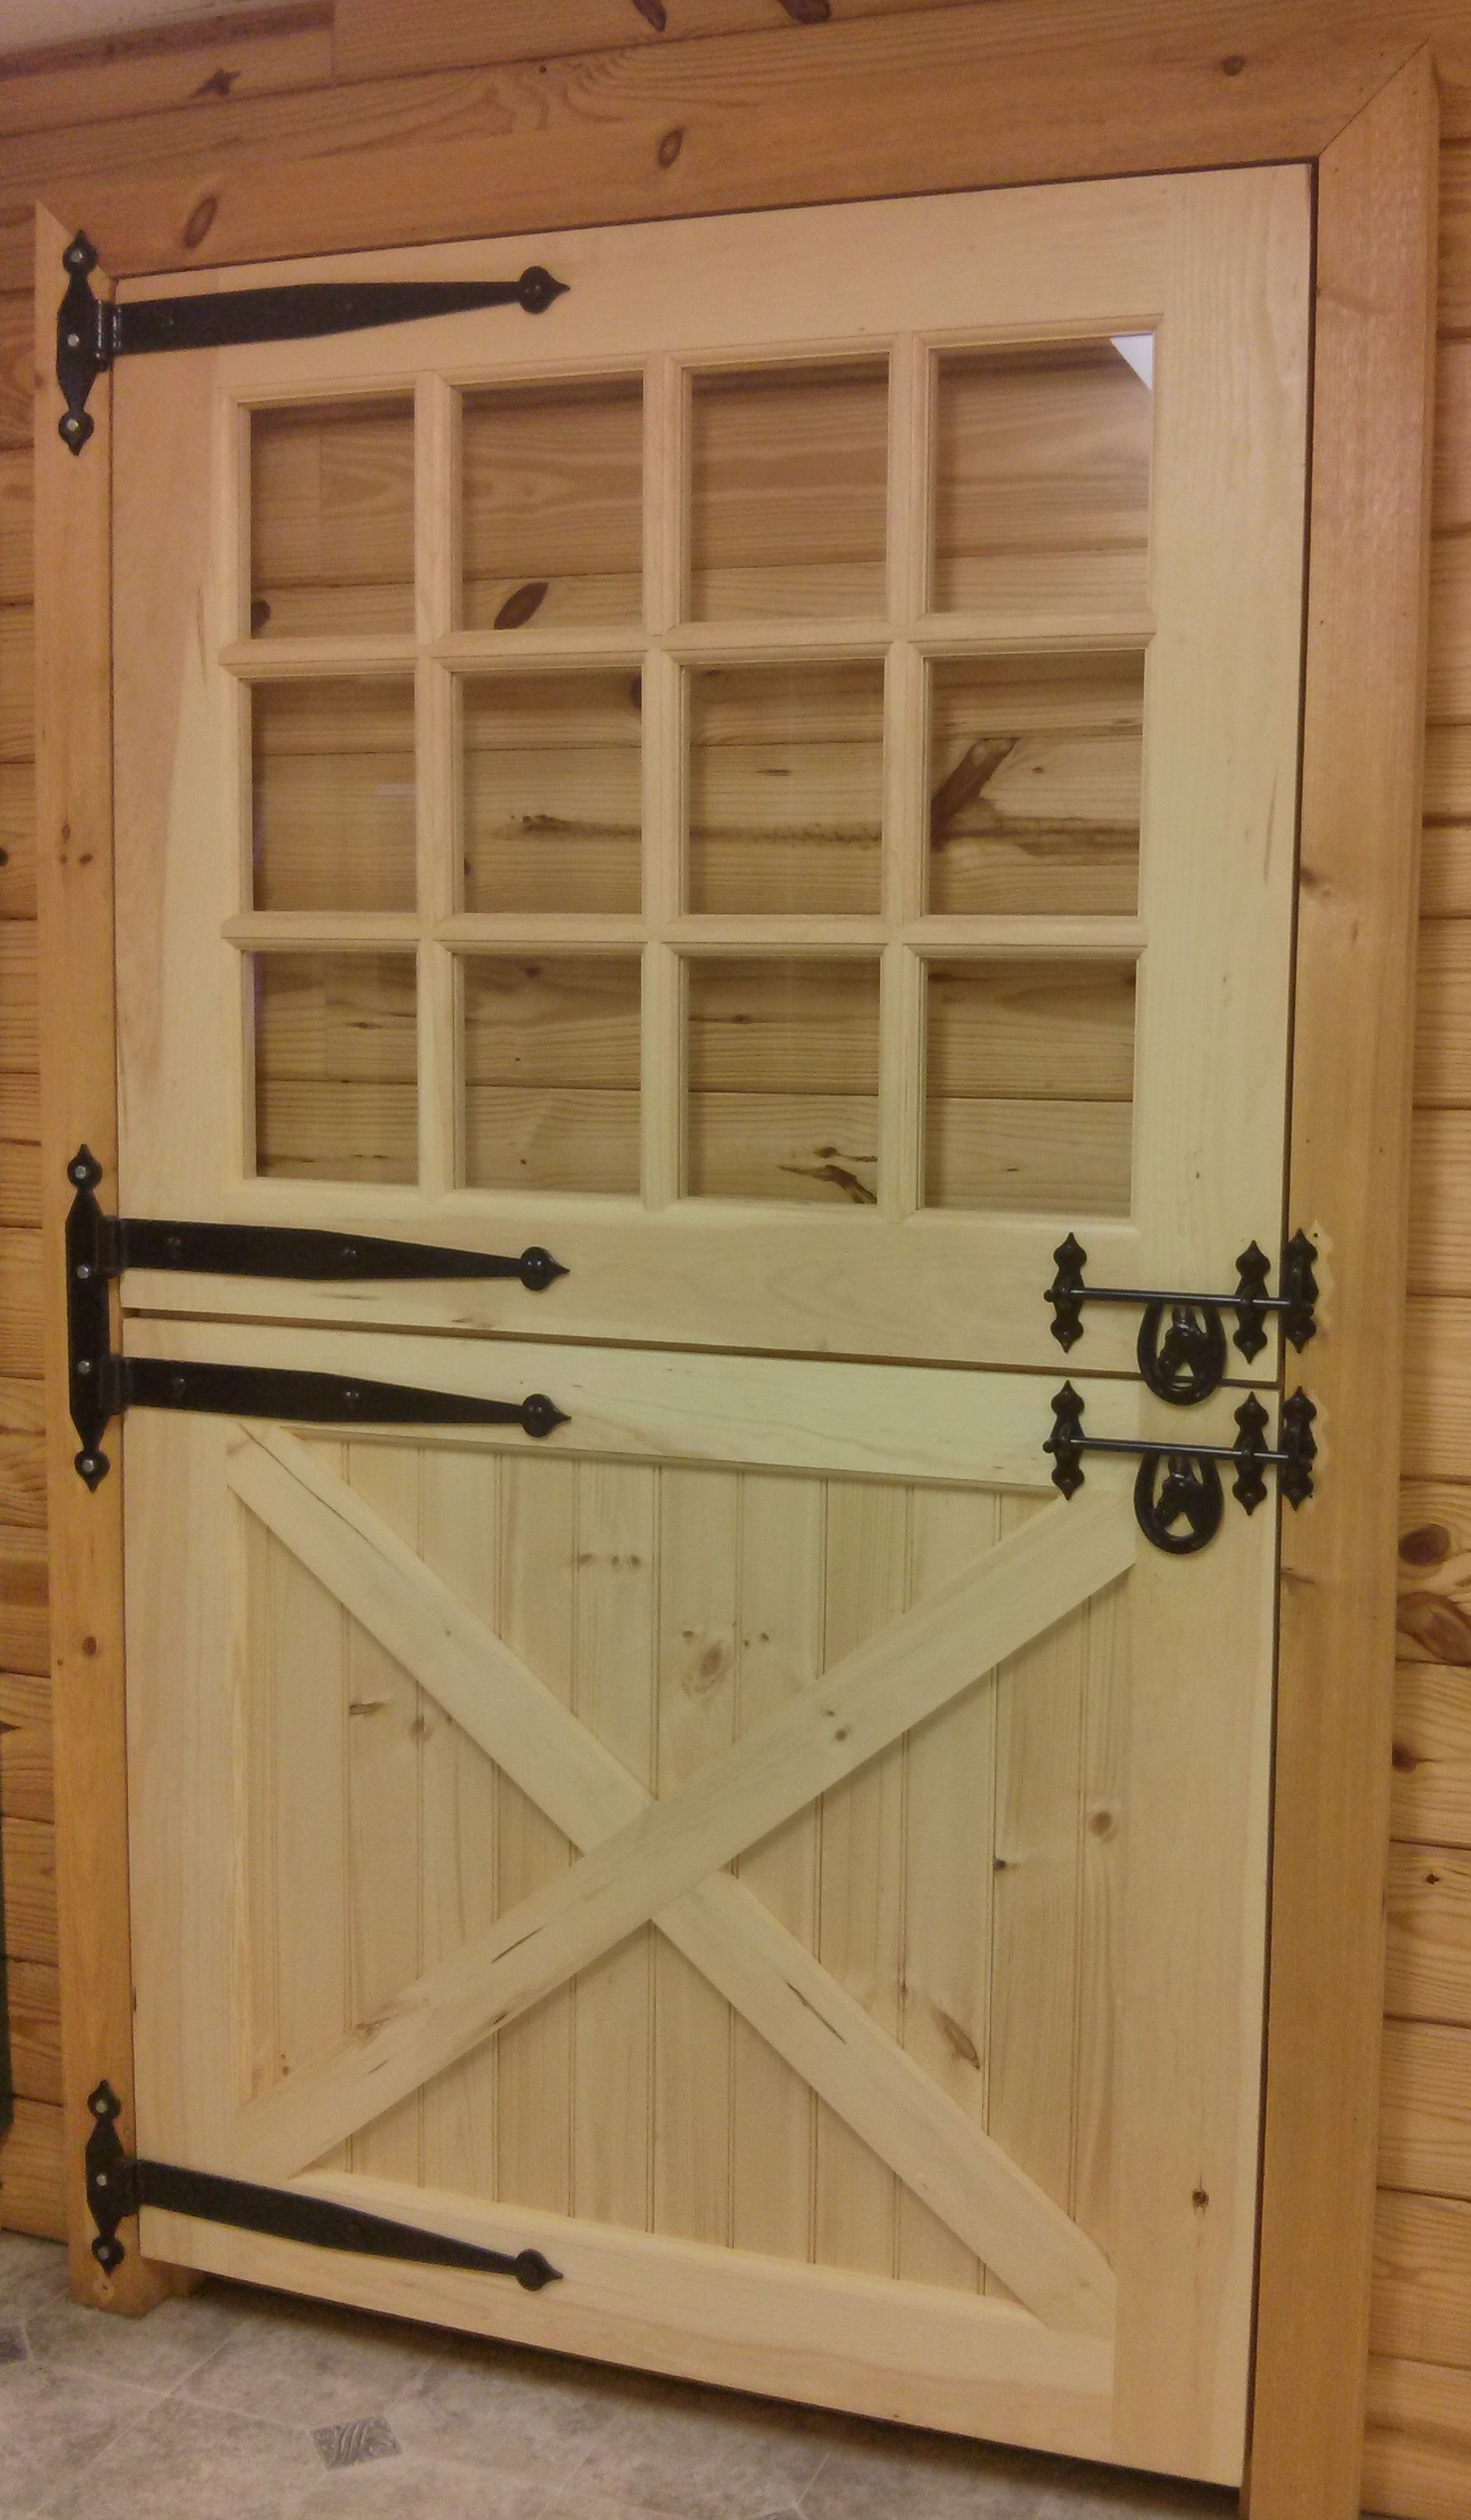 Wooden Solid Dutch Door With Window For The Home Doors